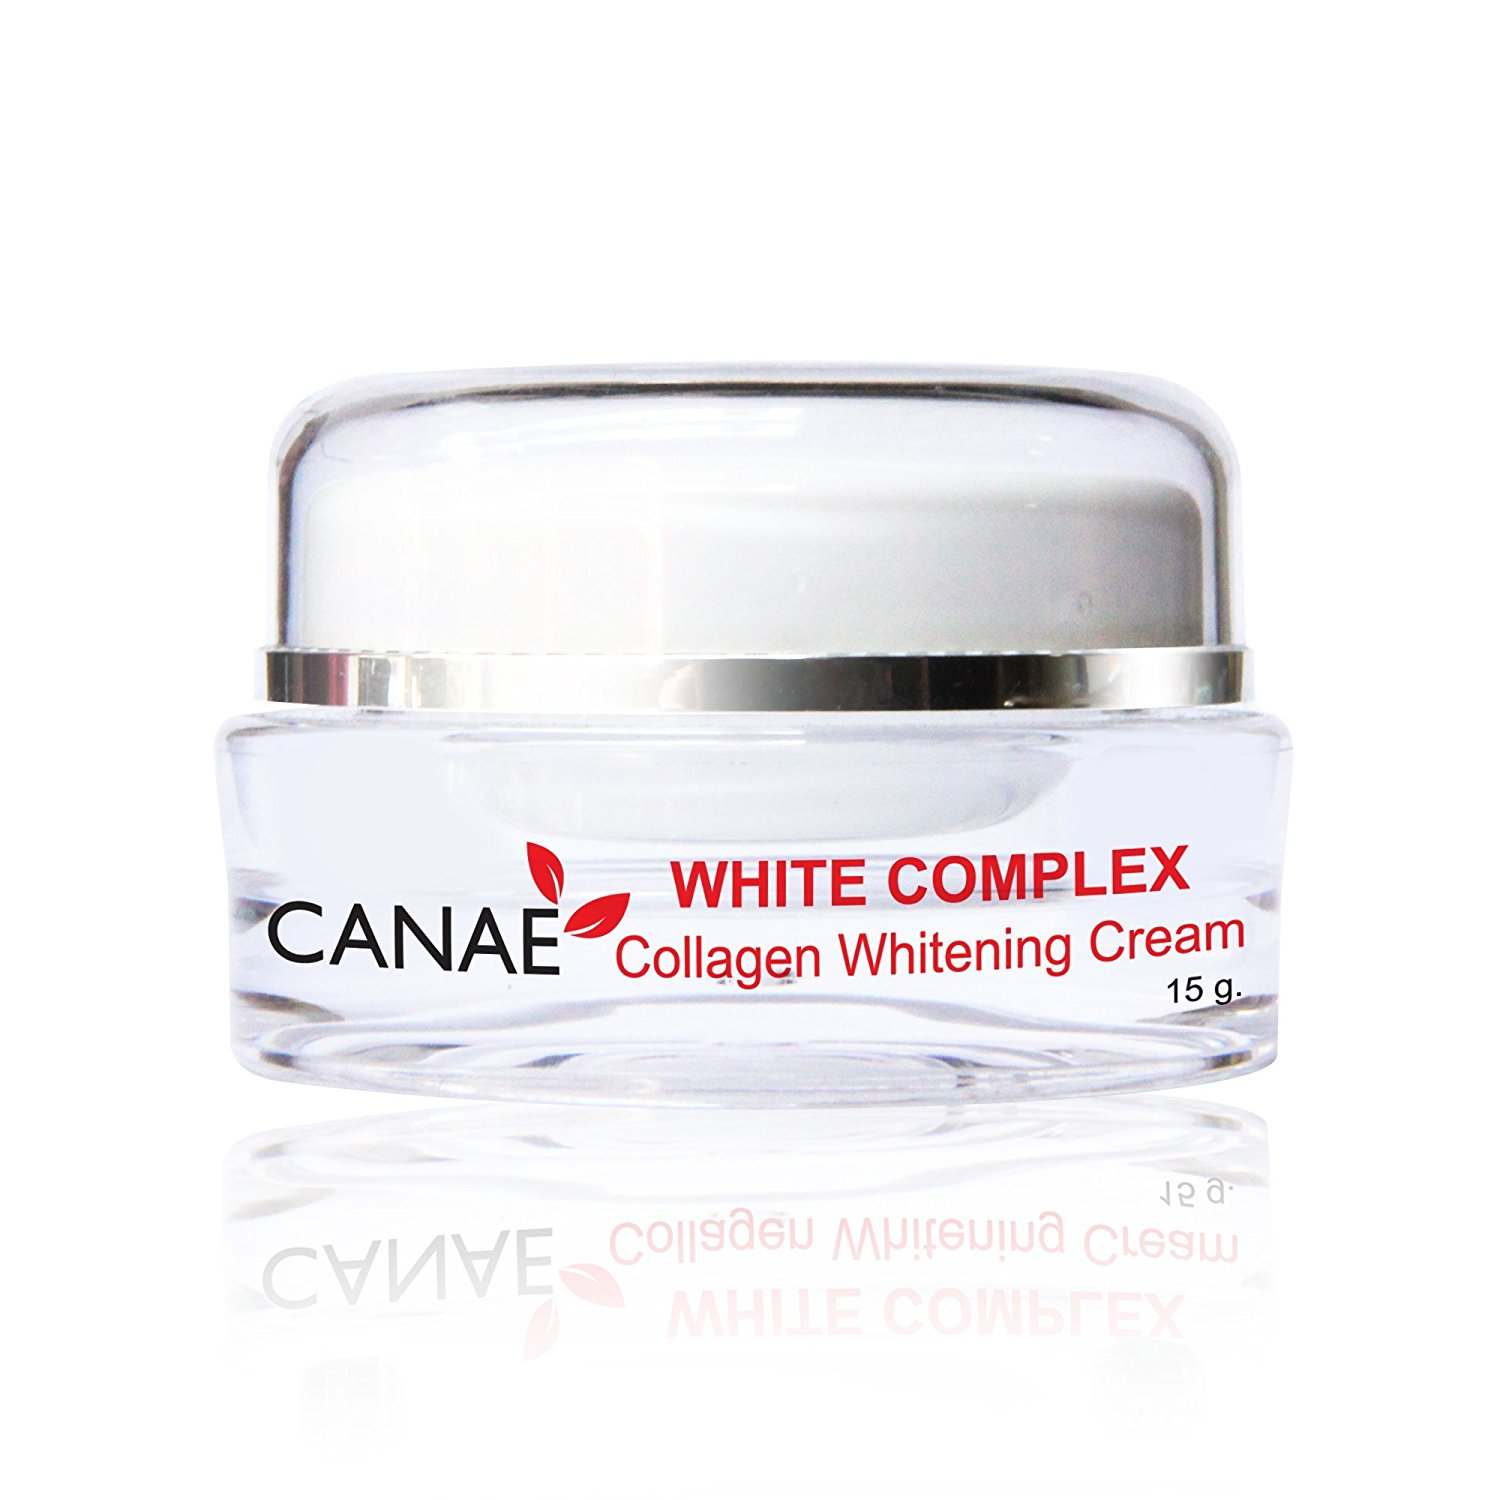 Cheap Skin White Whitening Face Cream For Men Find Berrisom Collagen Intensive Firming 50gr Get Quotations Canae Natural Lightening Dark Spot Removal And Anti Aging Wrinkle With Facial